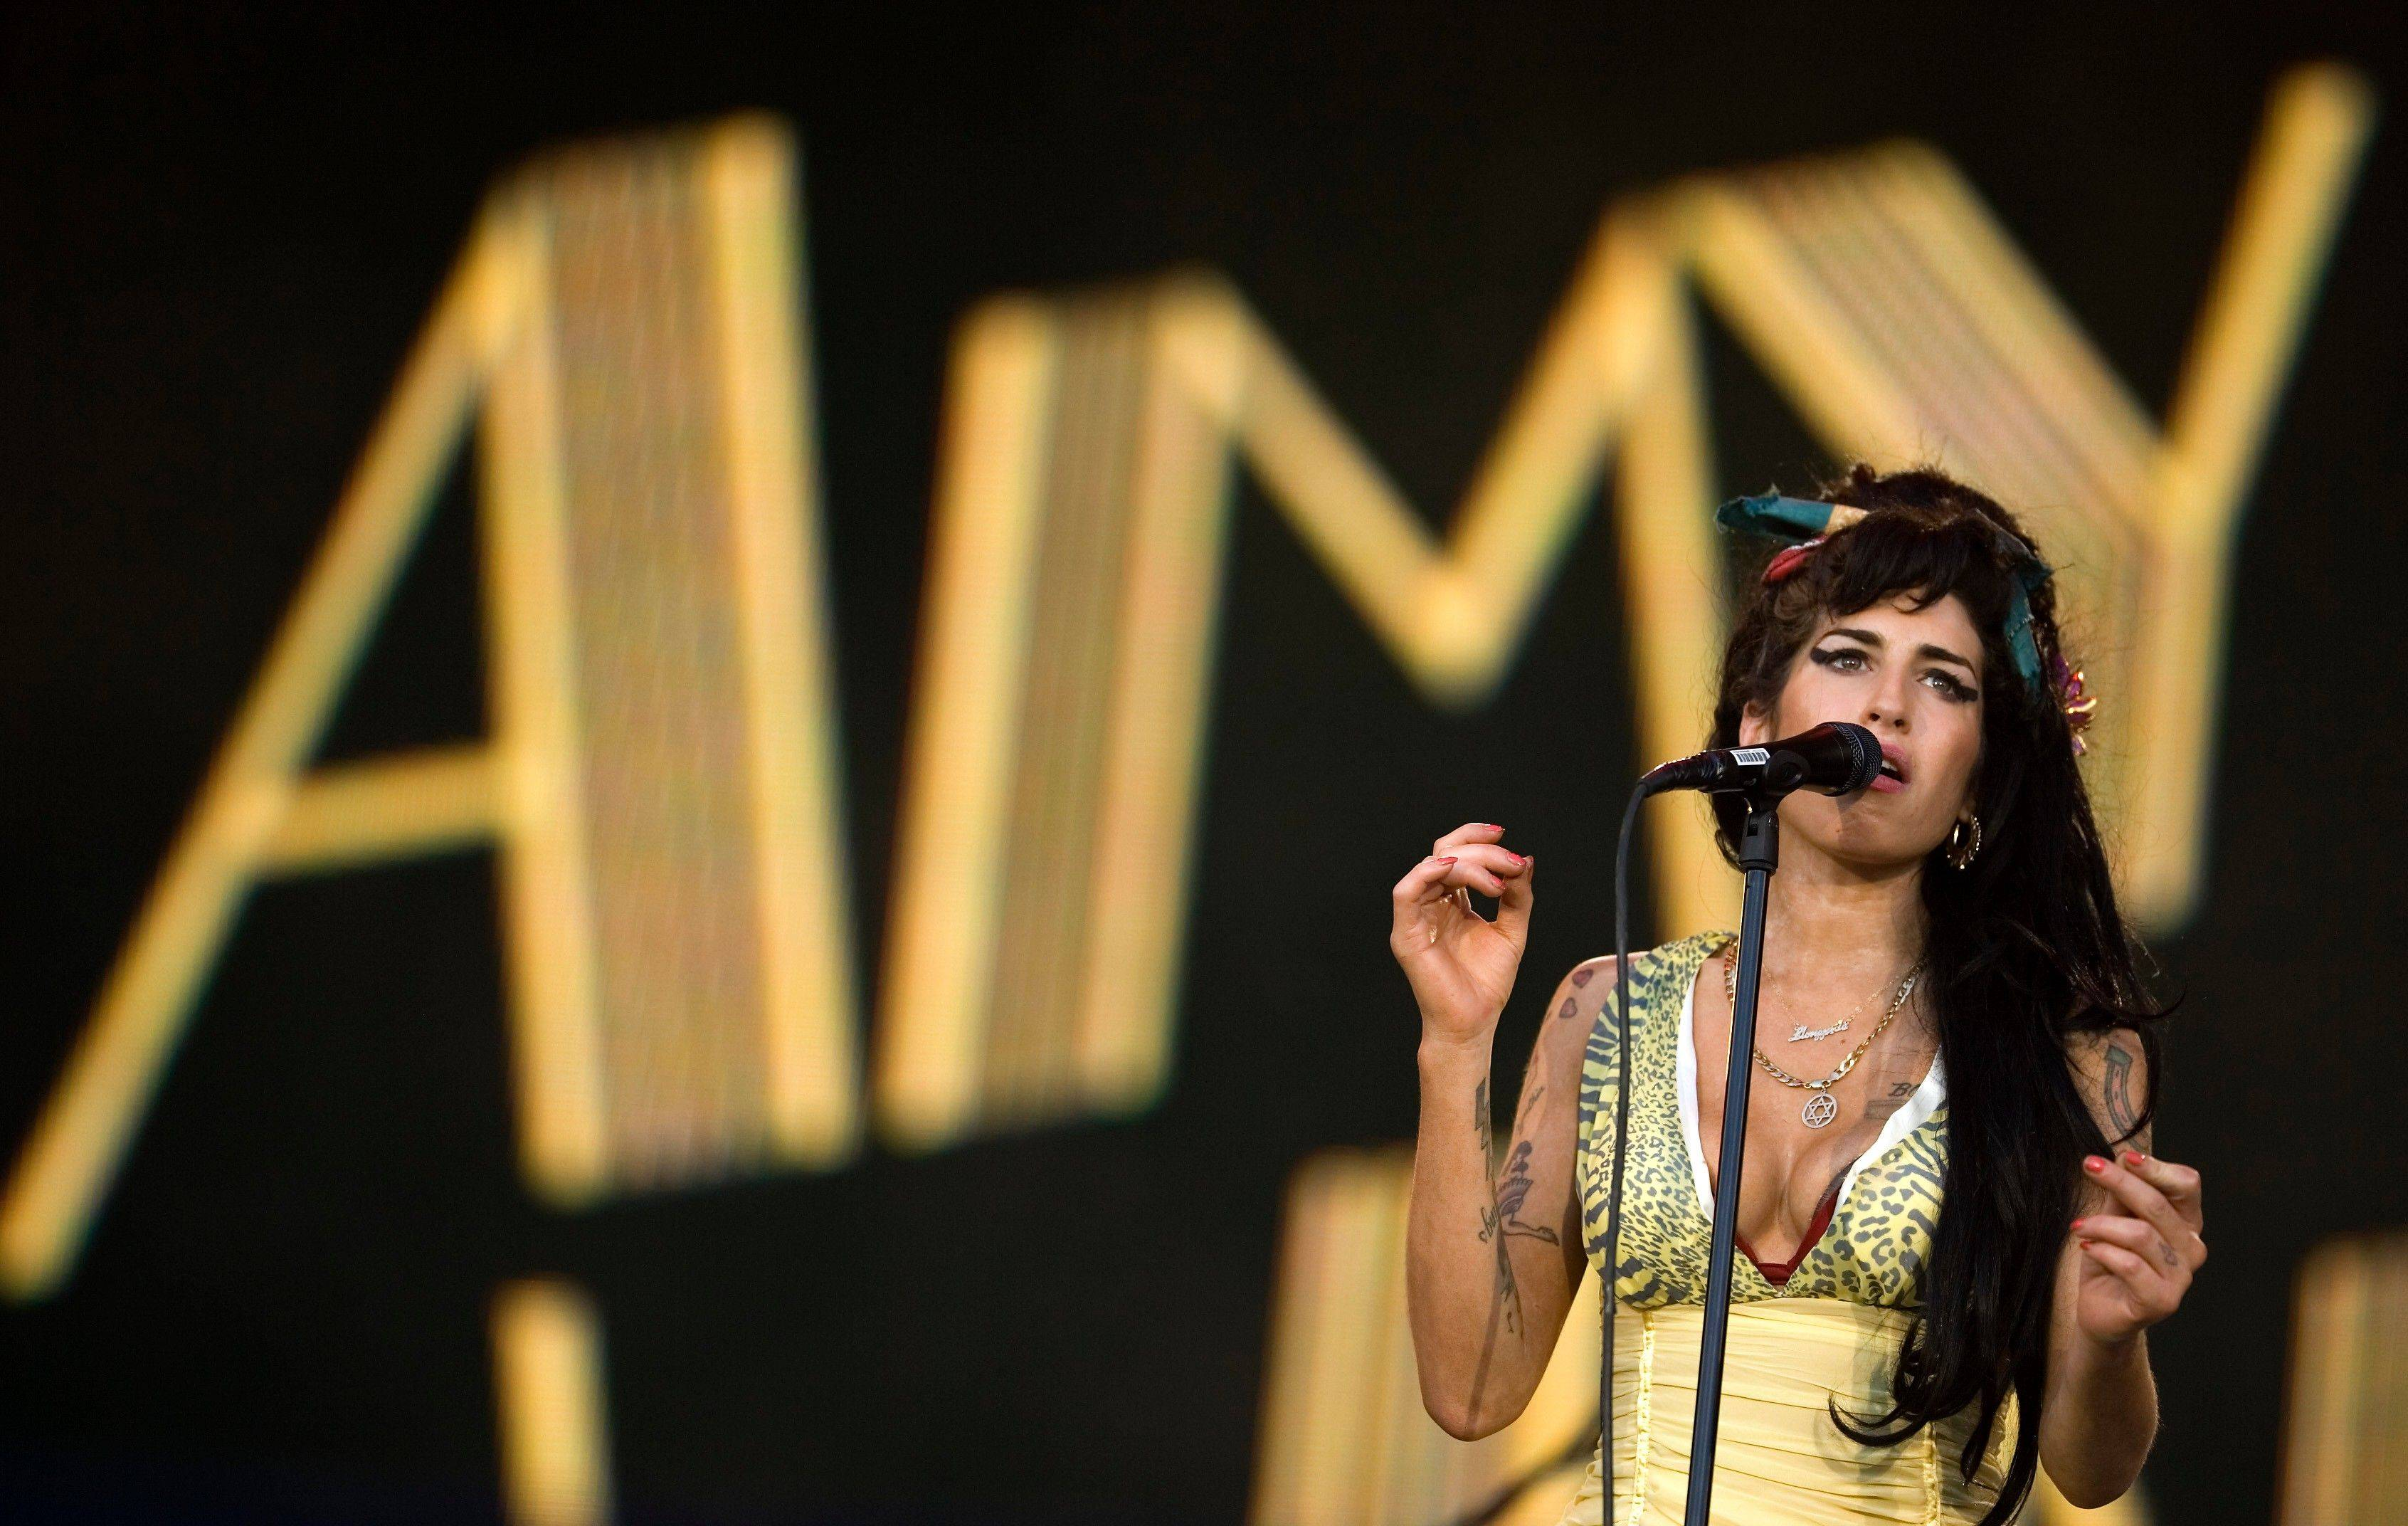 Amy Winehouse of England performs during the Rock in Rio music festival in Arganda del Rey, on the outskirts of Madrid.